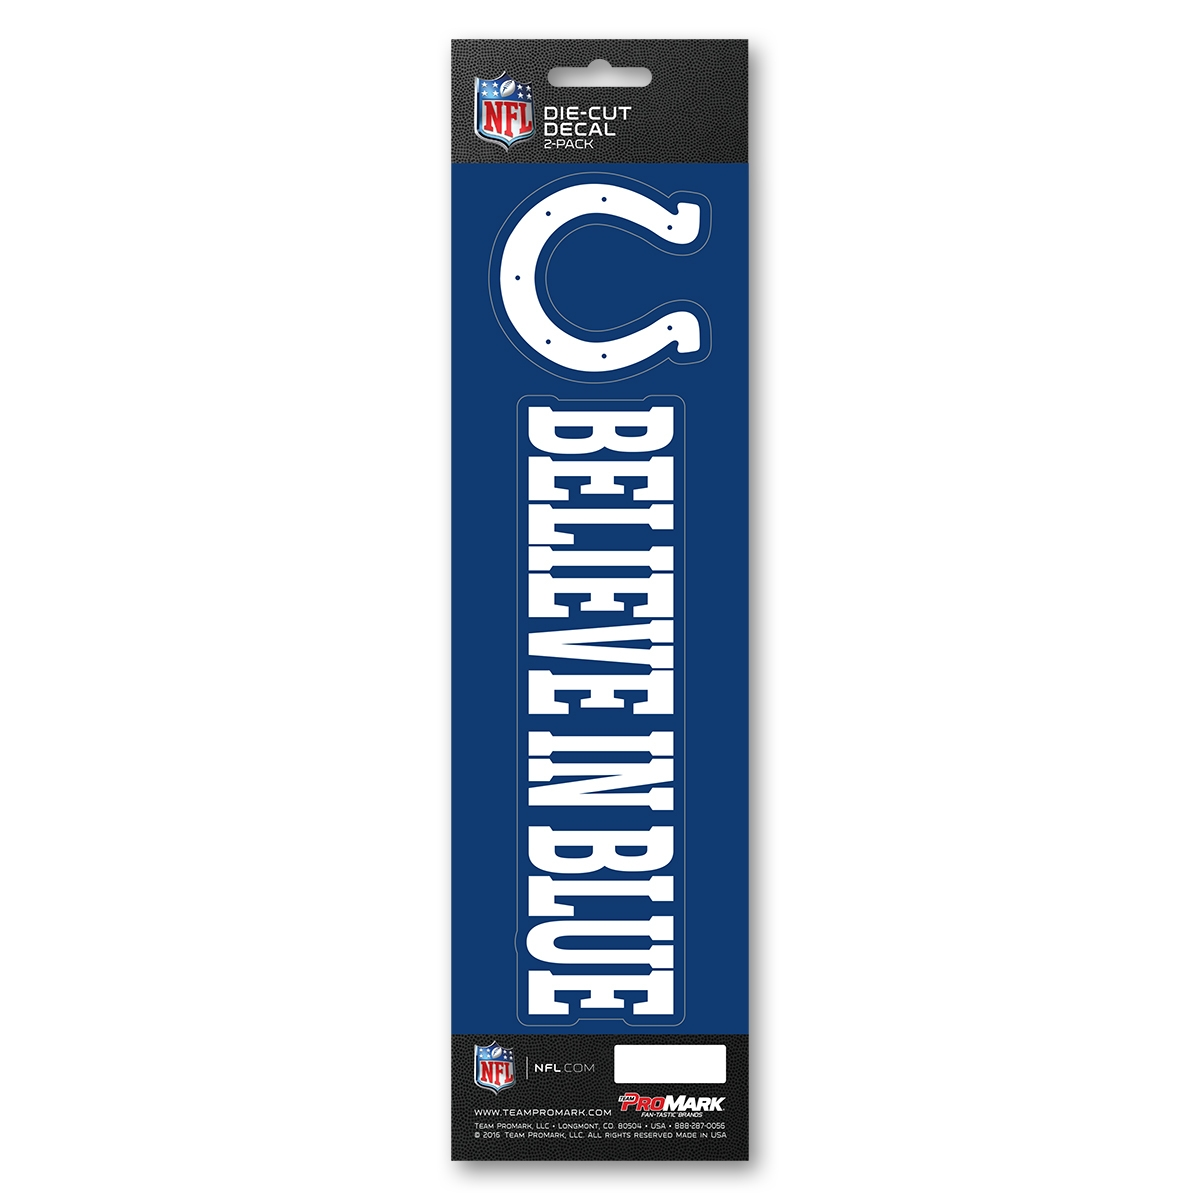 Nfl Football Indianapolis Colts Decals - 8162029113 - Indianapolis Colts Decal Die Cut Slogan Pack 8162029113